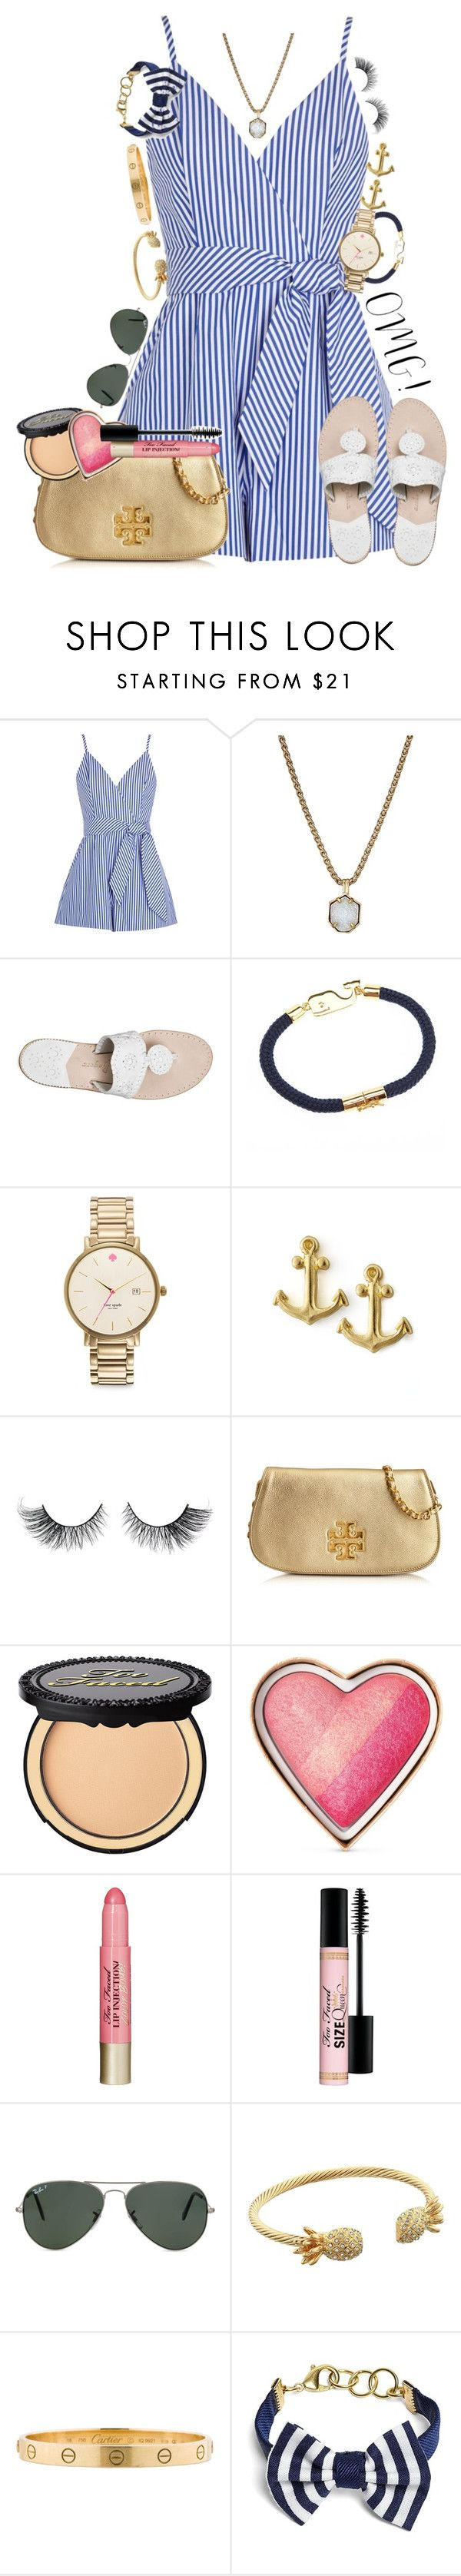 """""""profile pic is such a personality pic of me"""" by thefashionbyem ❤ liked on Polyvore featuring Finders Keepers, Kendra Scott, Jack Rogers, Kate Spade, Dogeared, Tory Burch, Too Faced Cosmetics, Ray-Ban, Lilly Pulitzer and Cartier"""